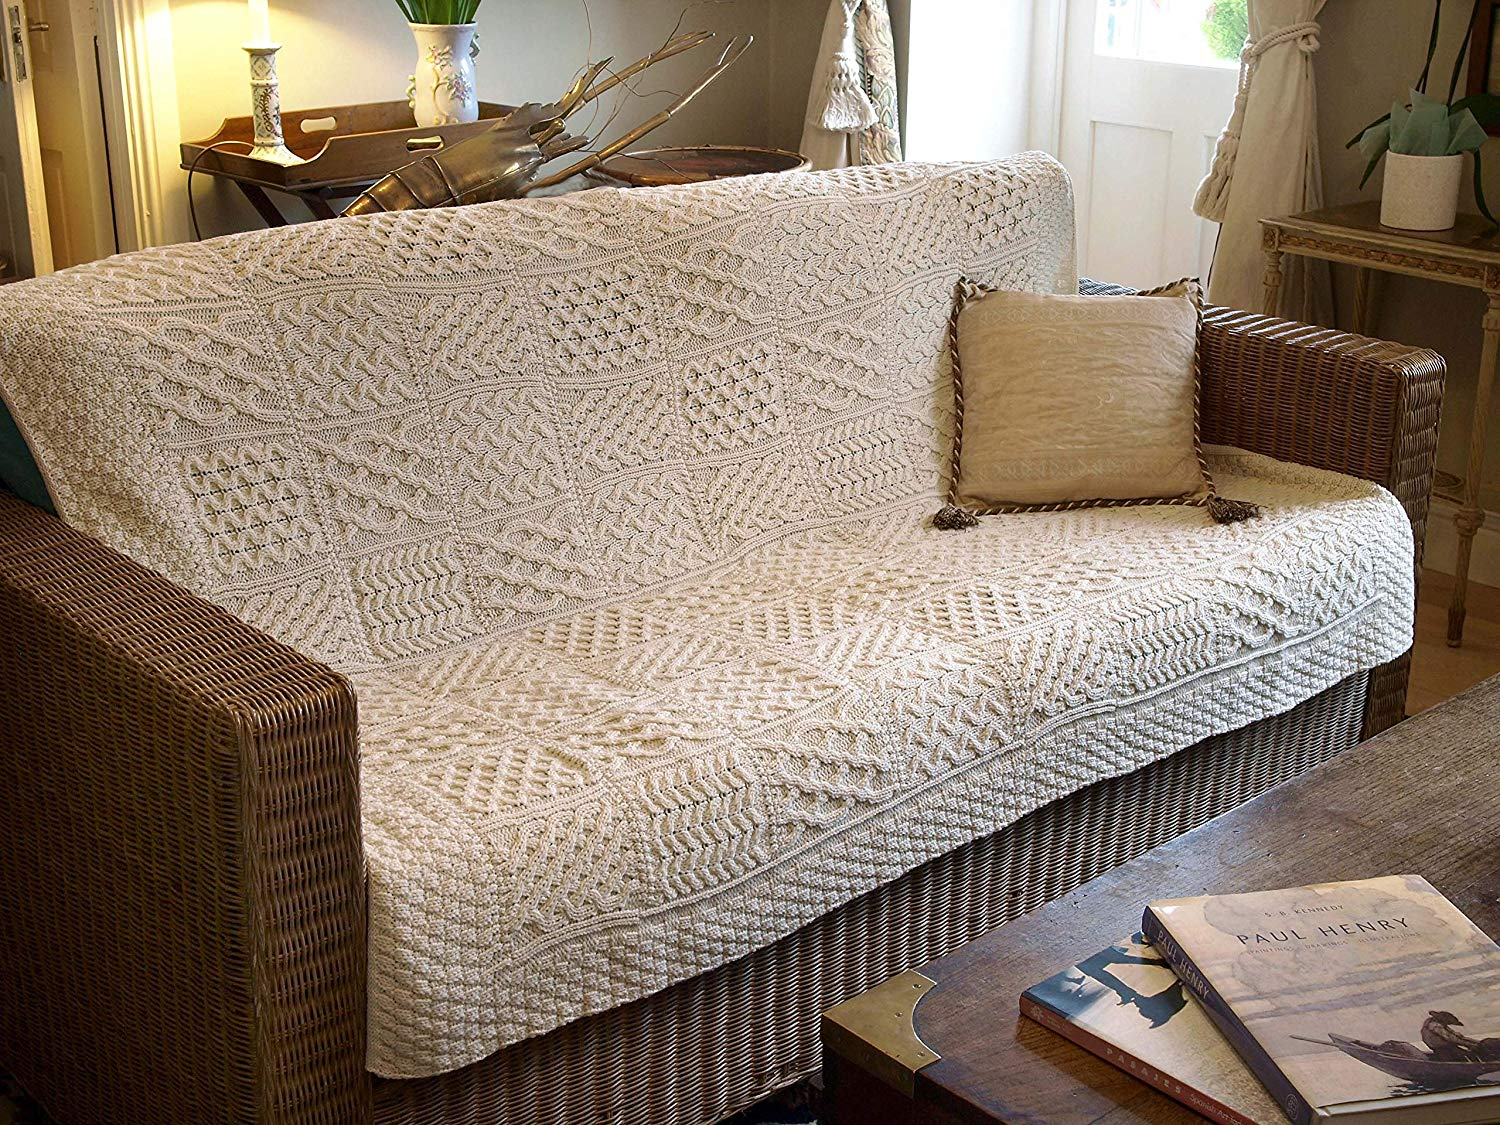 A couch with a large knit blanket on it.